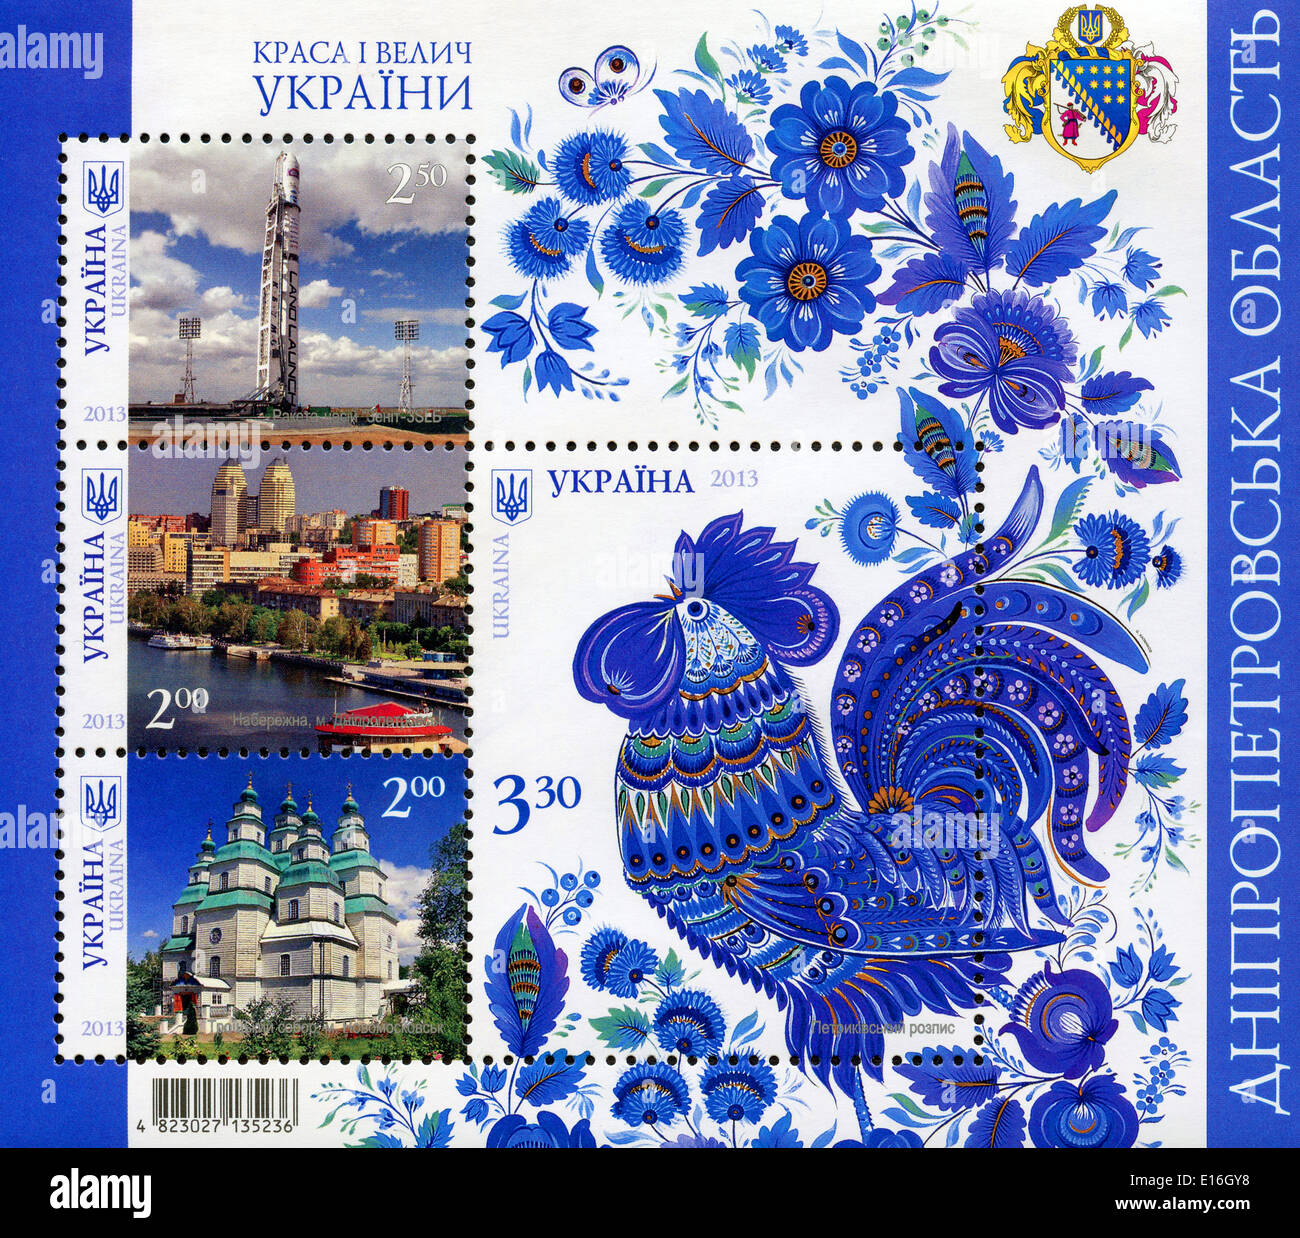 Ukrainian postage stamps with traditional motifs - Stock Image